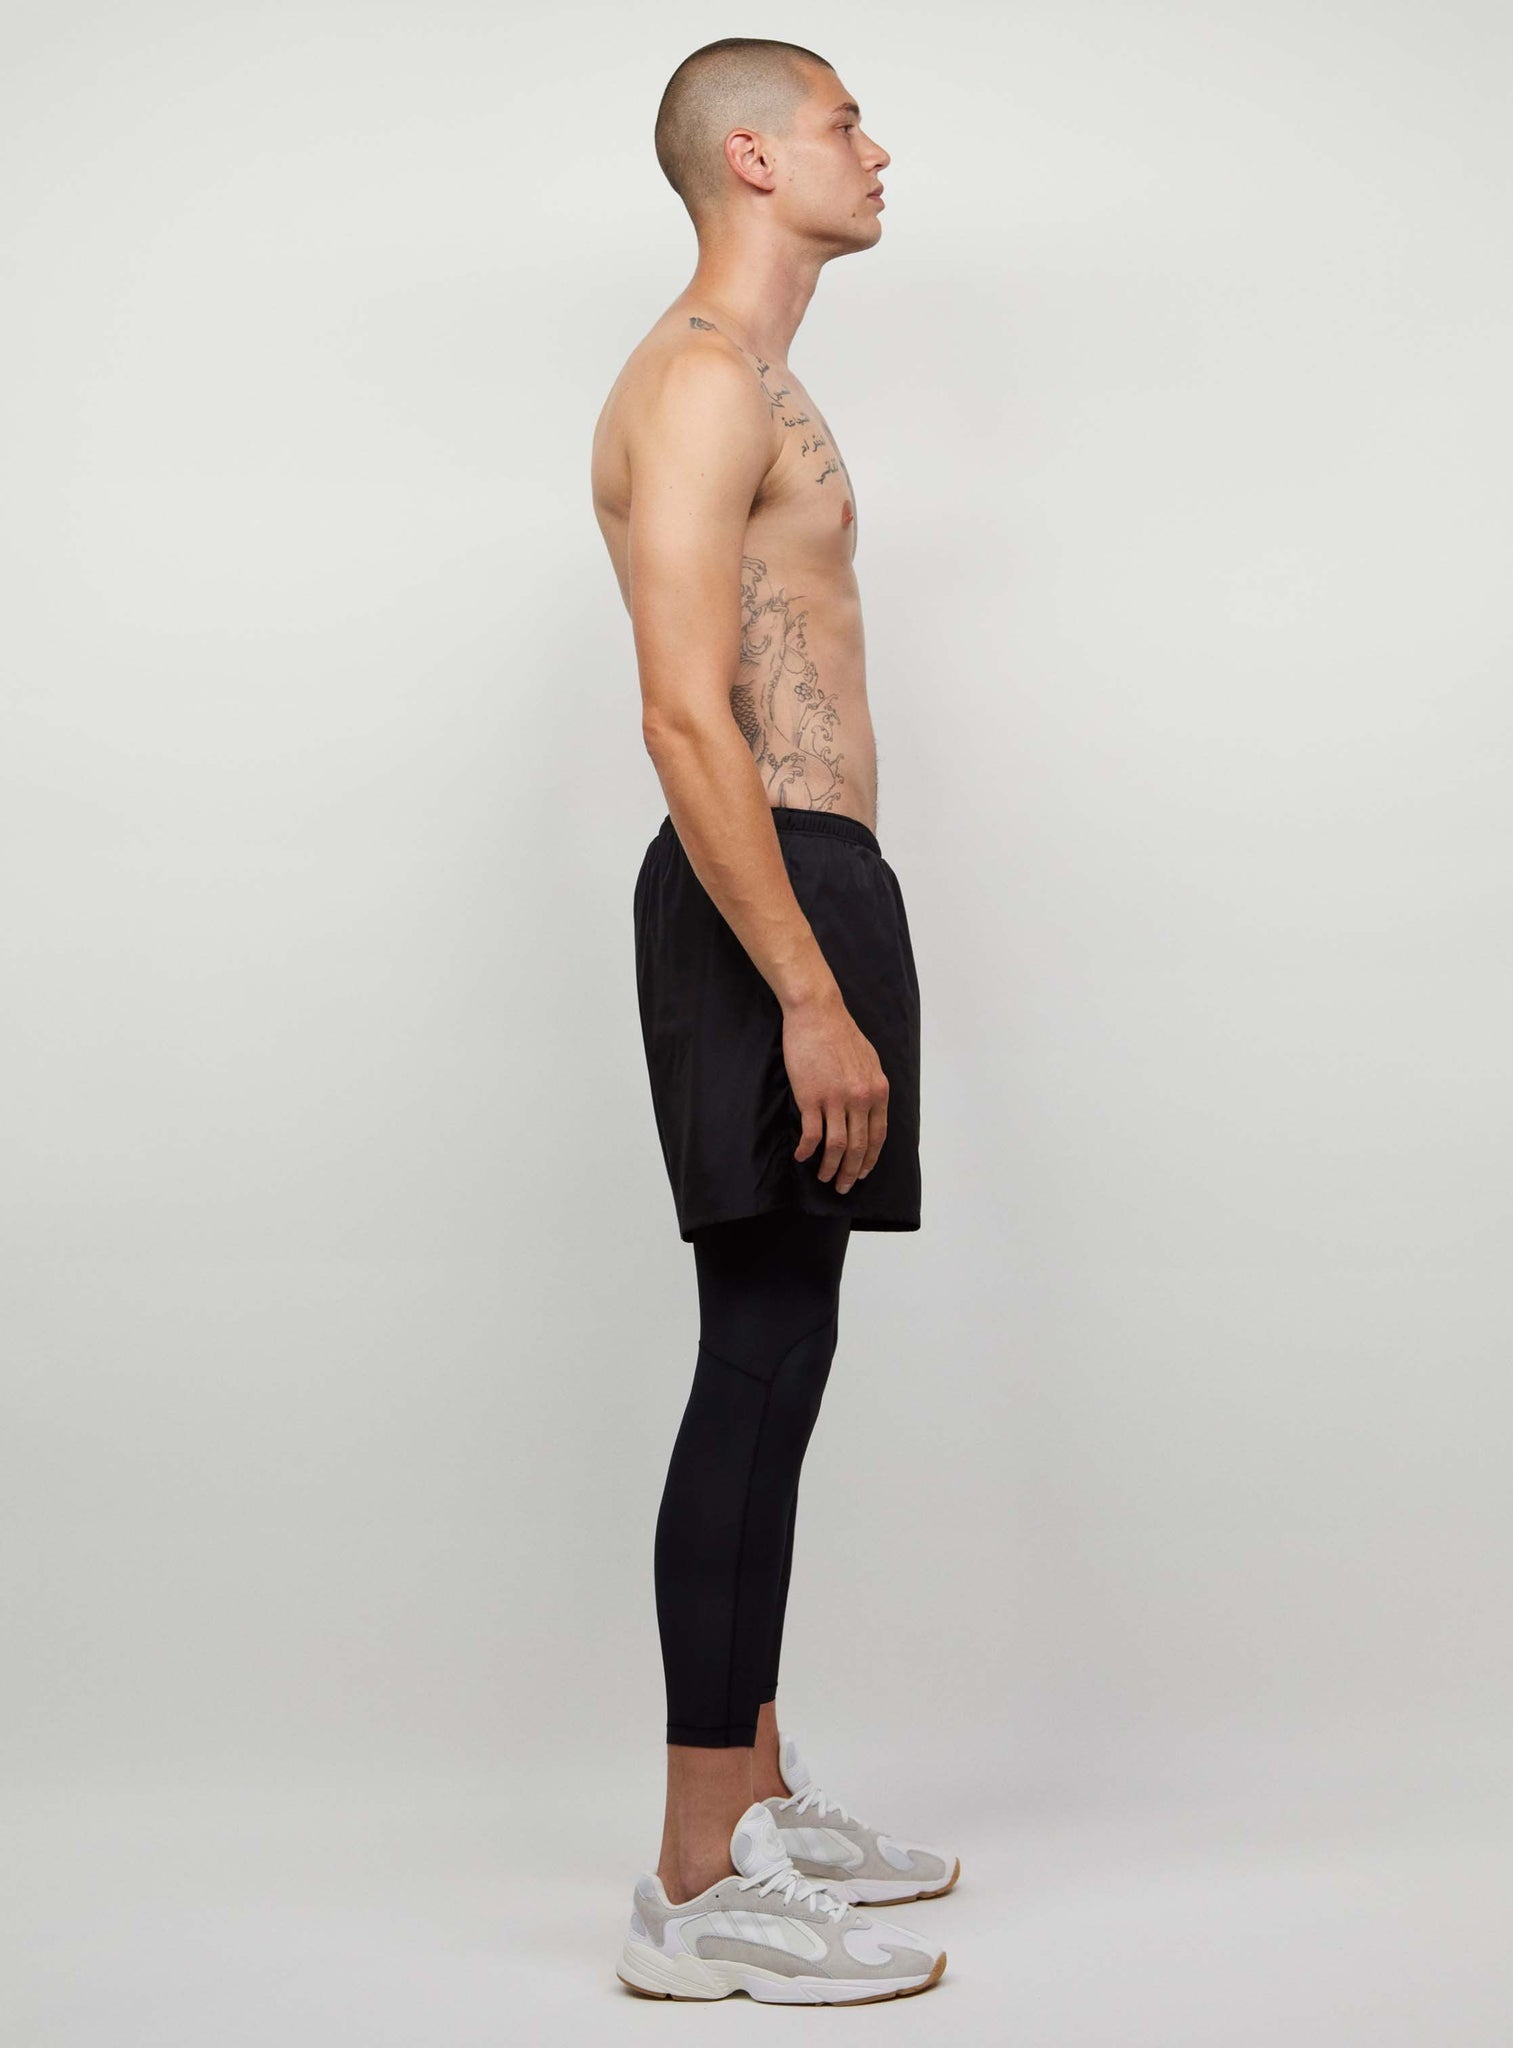 WARDROBE.NYC Legging |M02